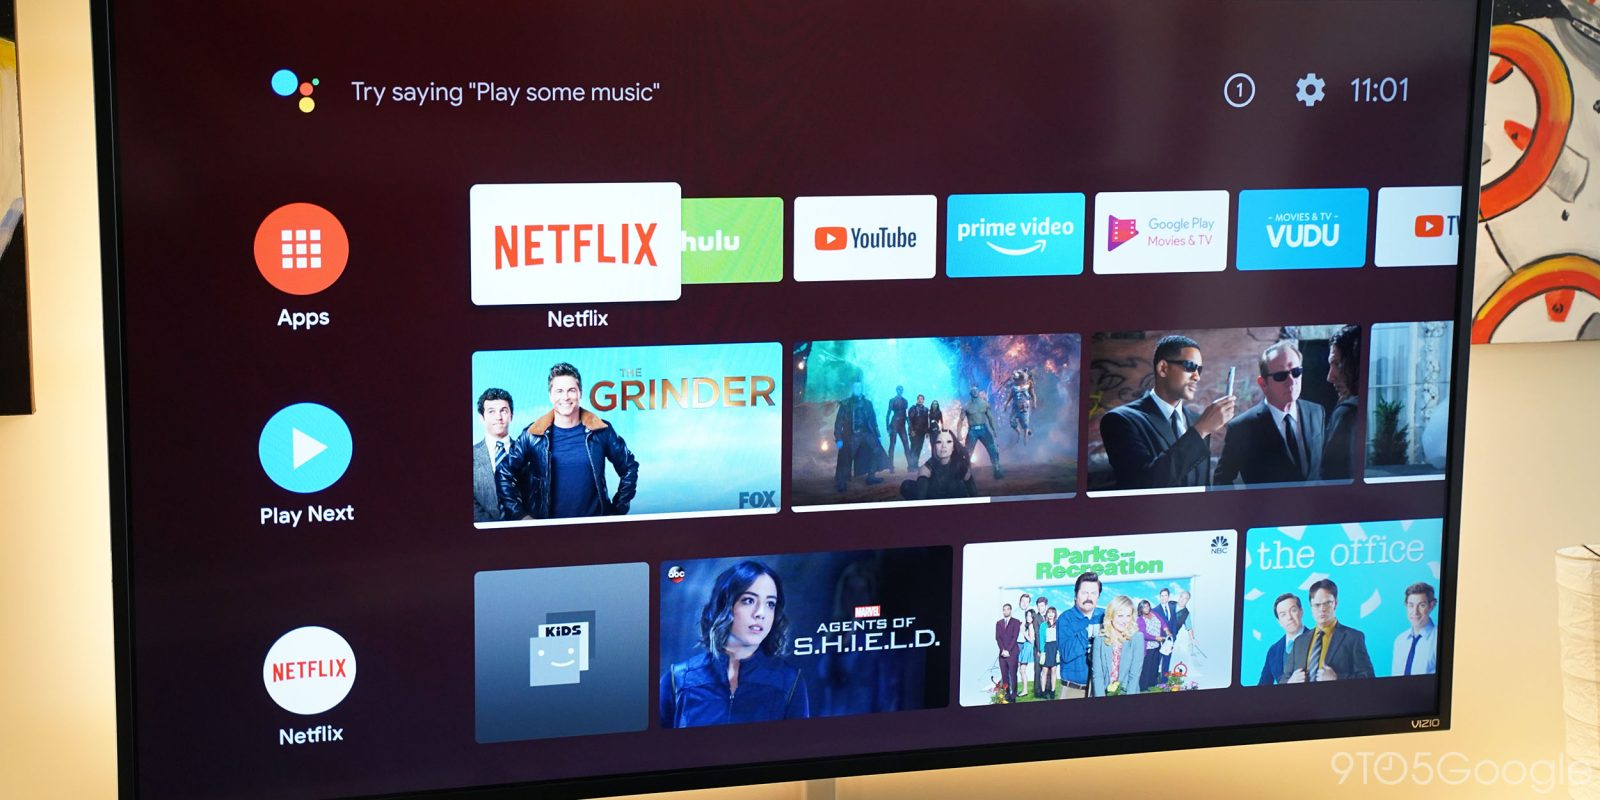 Android TV homescreen update delivers more polished look w